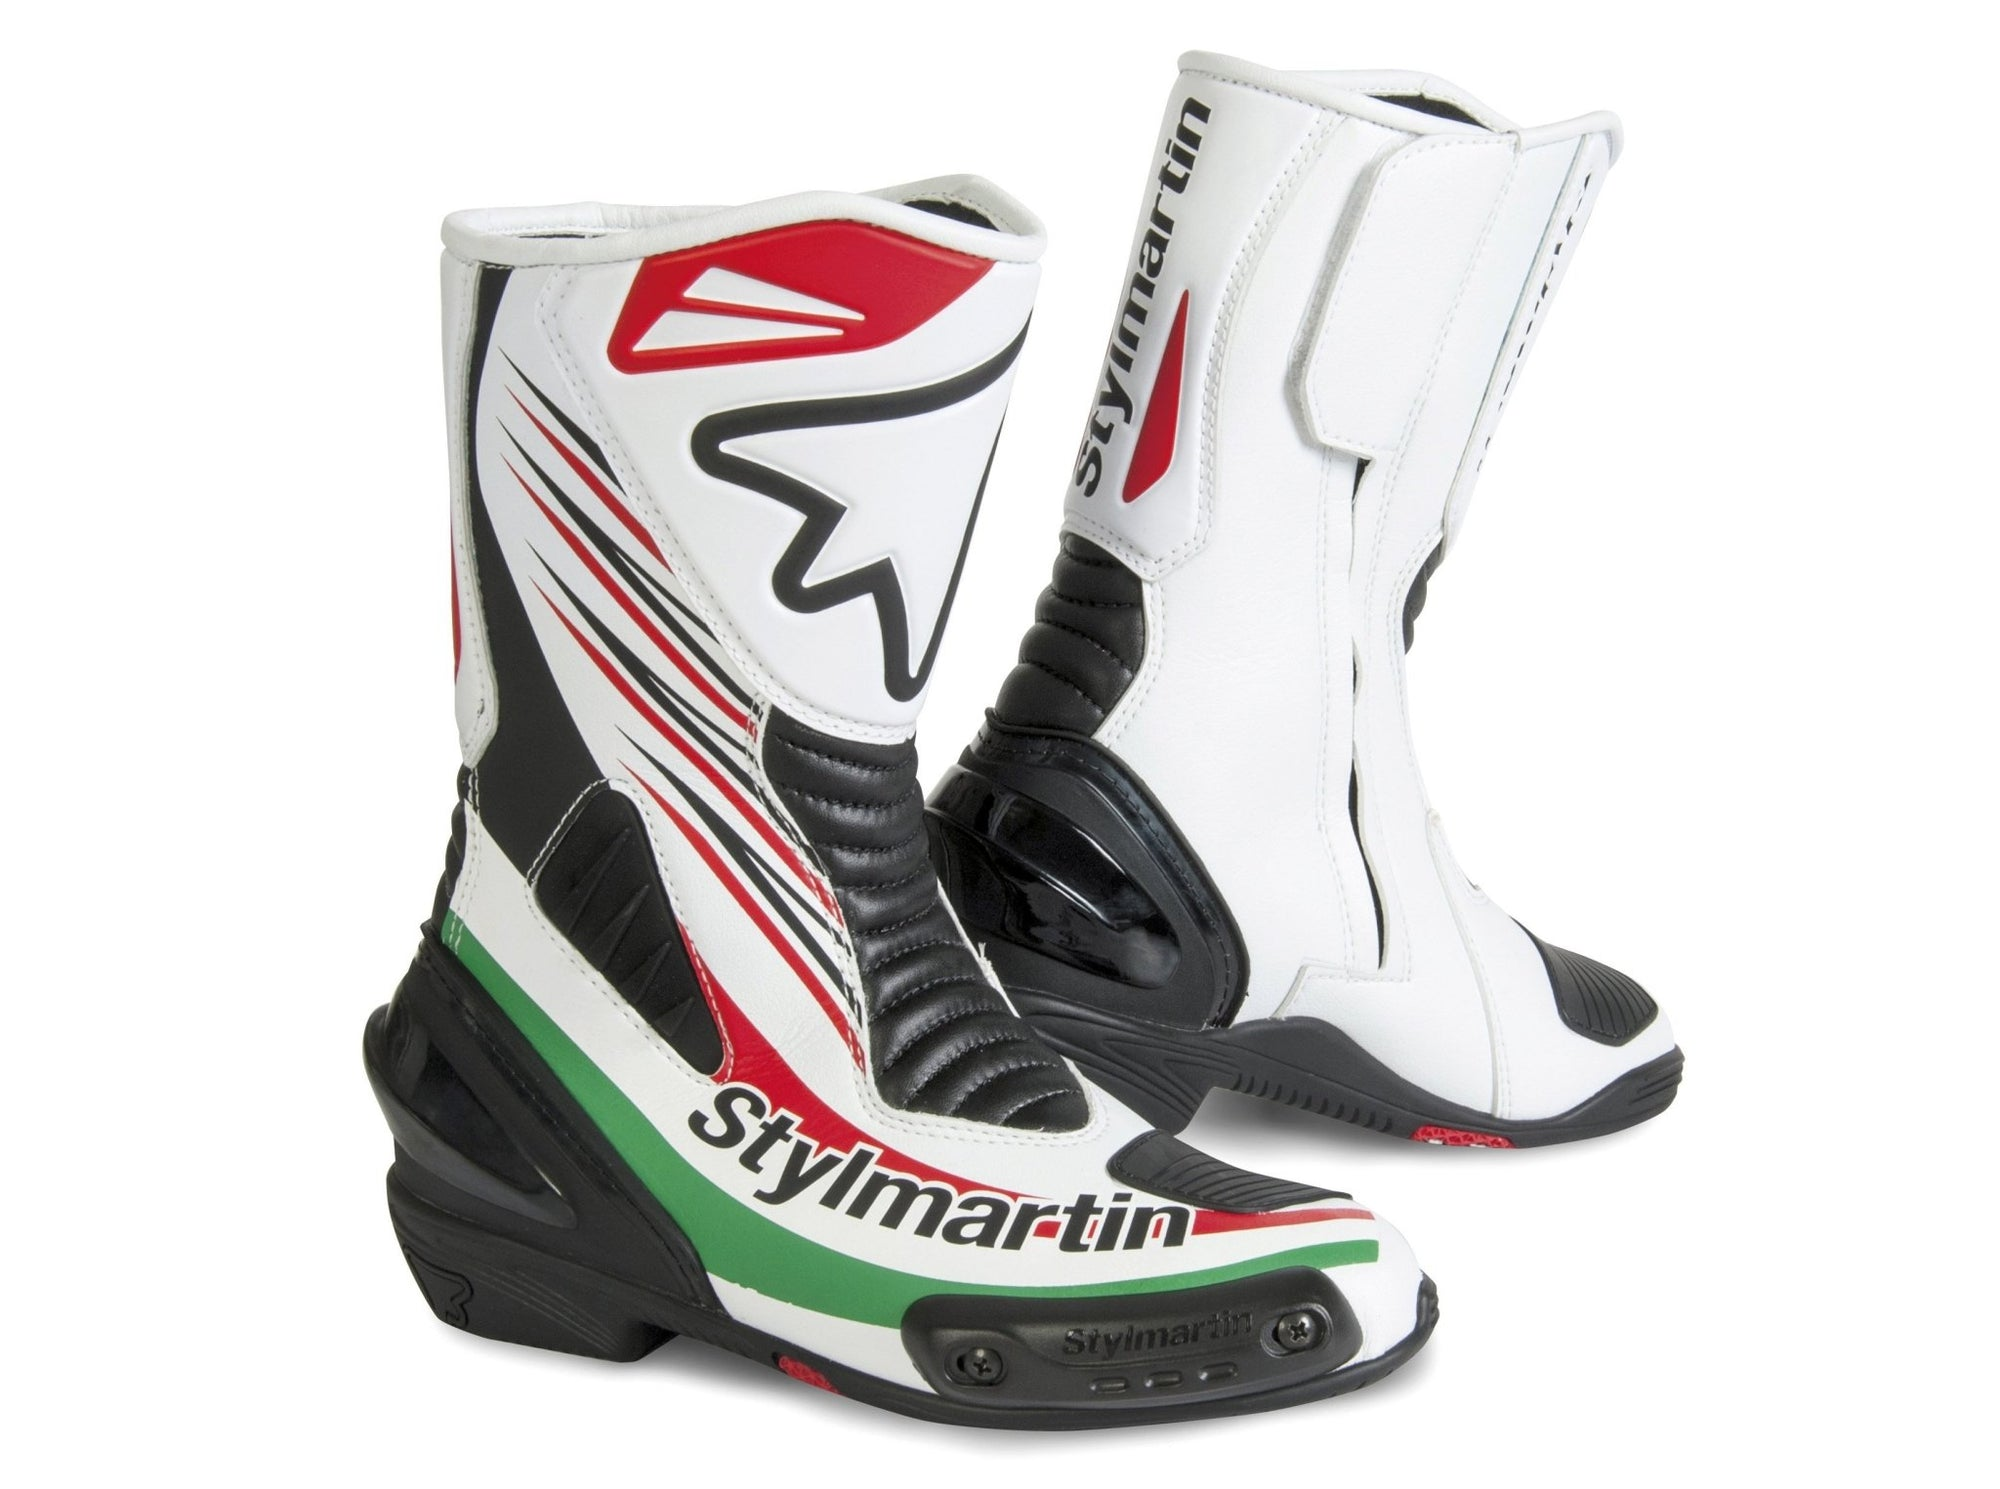 Stylmartin - Stylmartin Dream RS Racing in Black White - Boots - Salt Flats Clothing